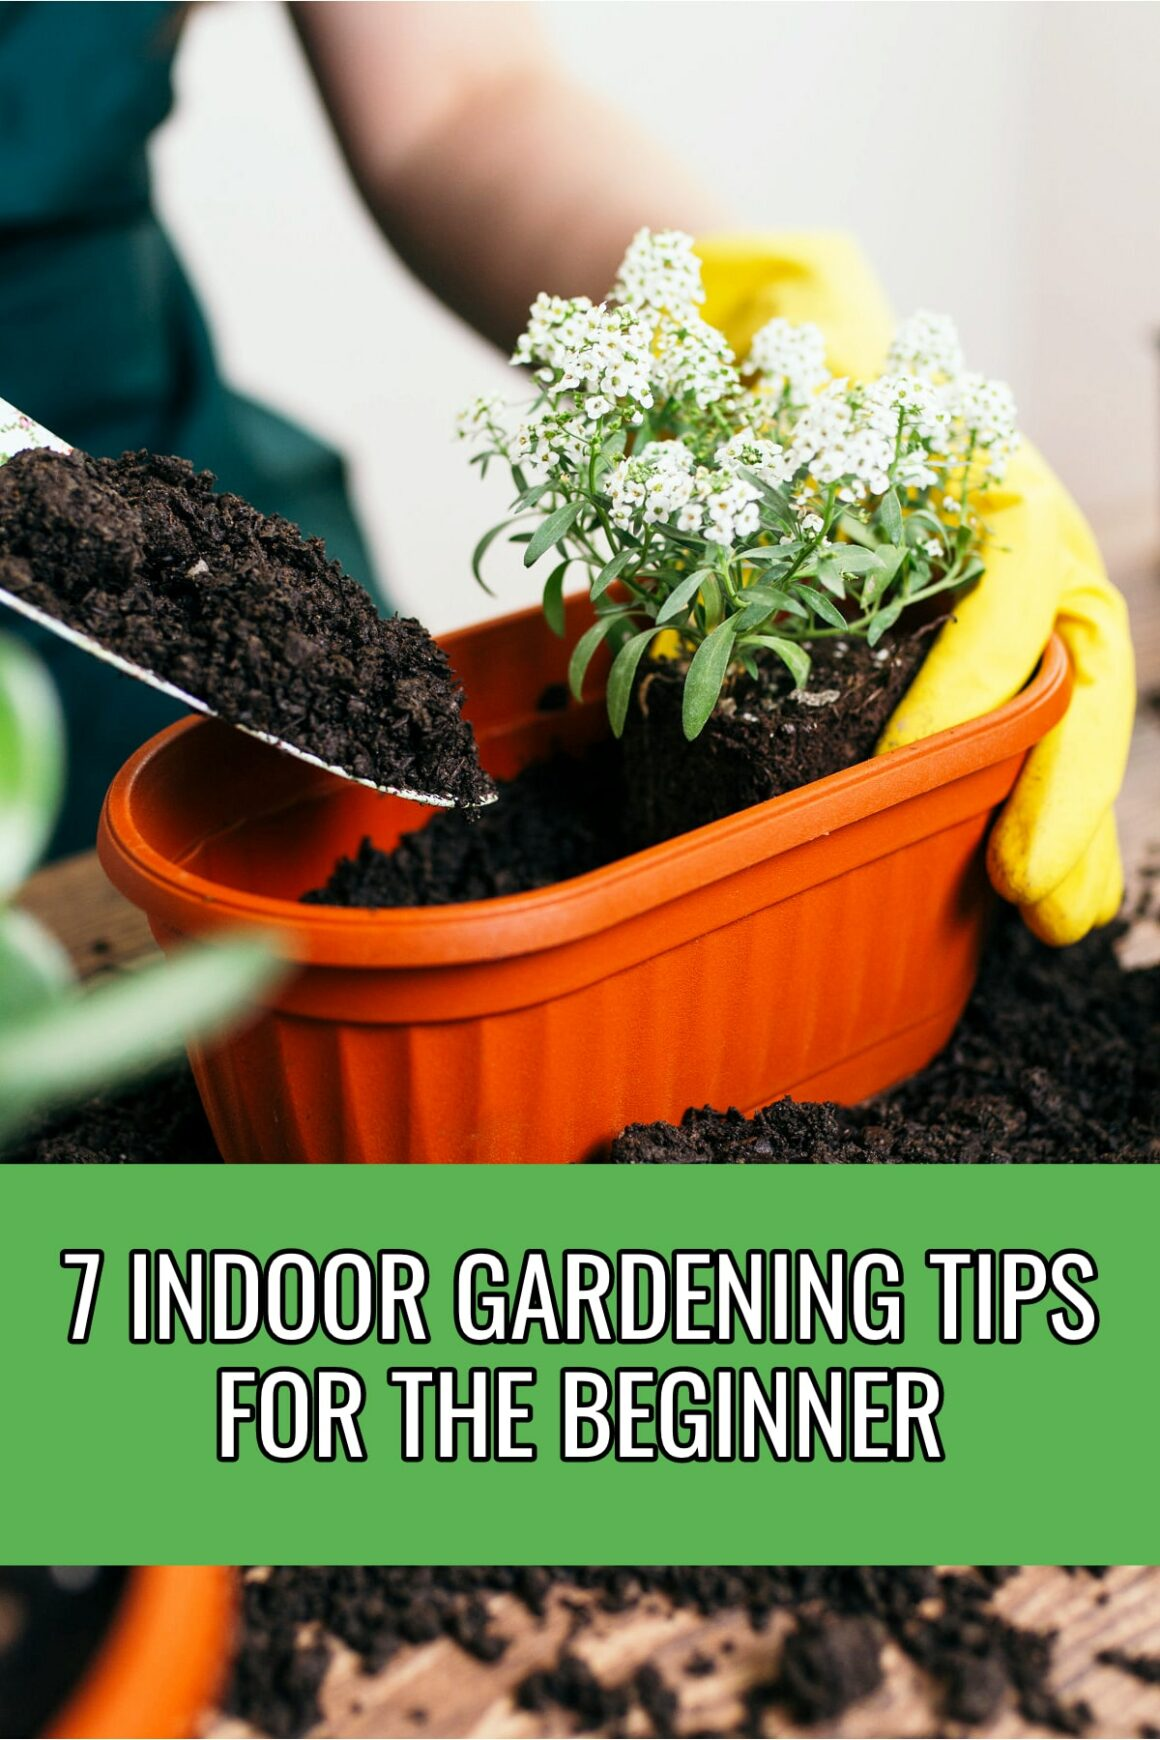 Indoor Gardening Tips For The Beginner